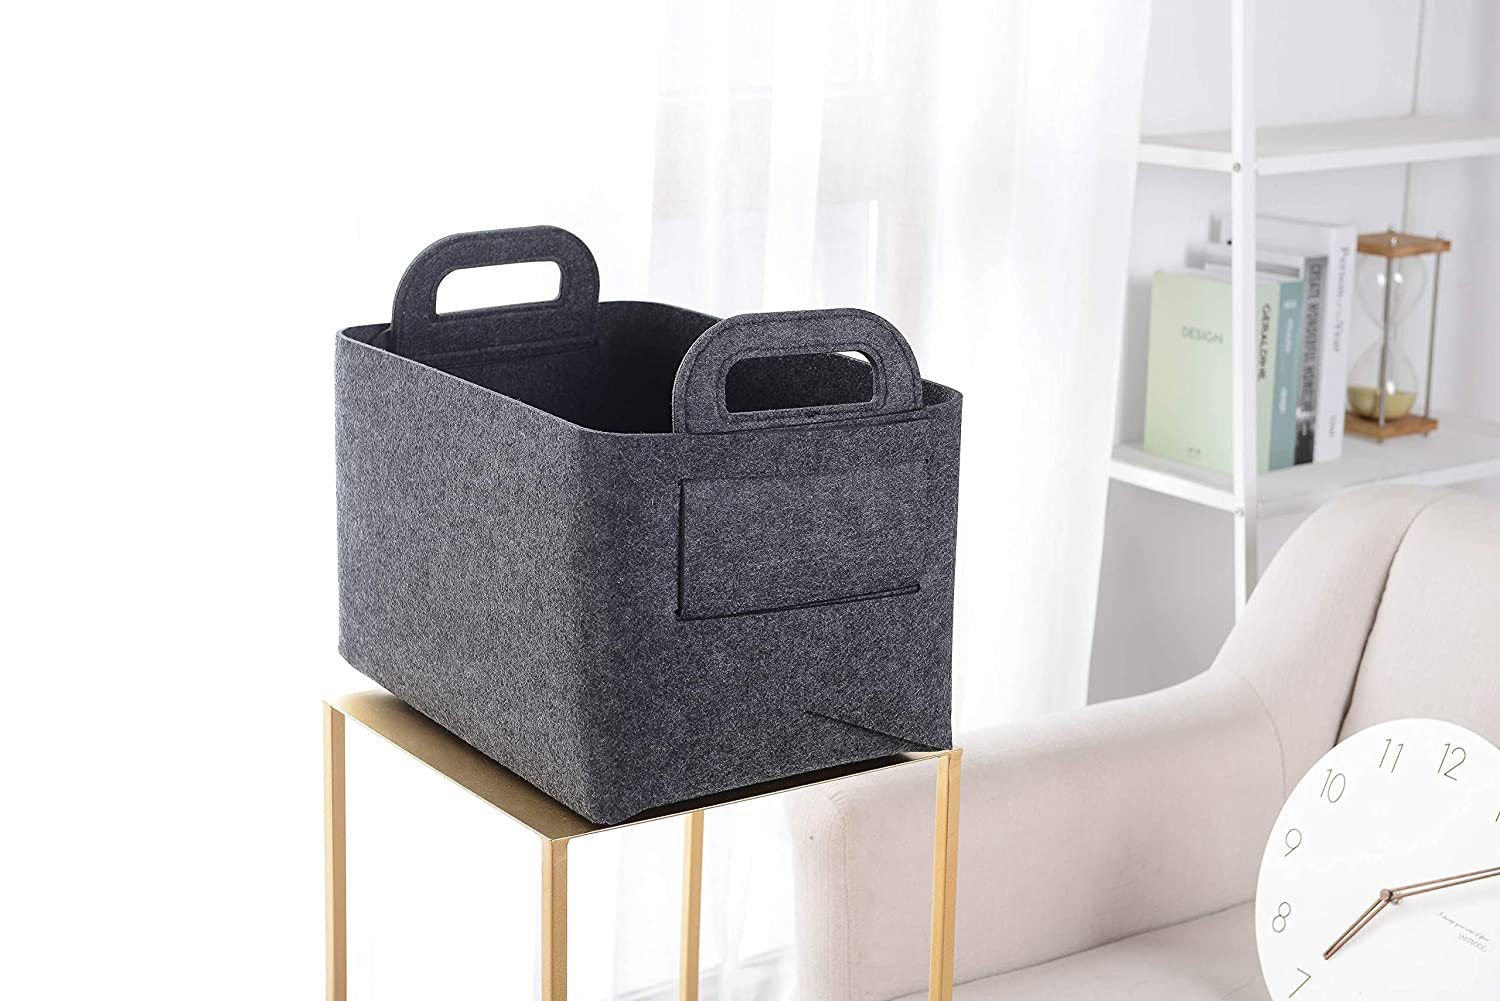 Laundry Xian min lu trade co. Bedroom Closet Collapsible /& Convenient Storage Solution for Office LTD Felt Storage Basket or Bin Size:13.8L/×9.5W/×8.3H Dark Grey, Small Toys